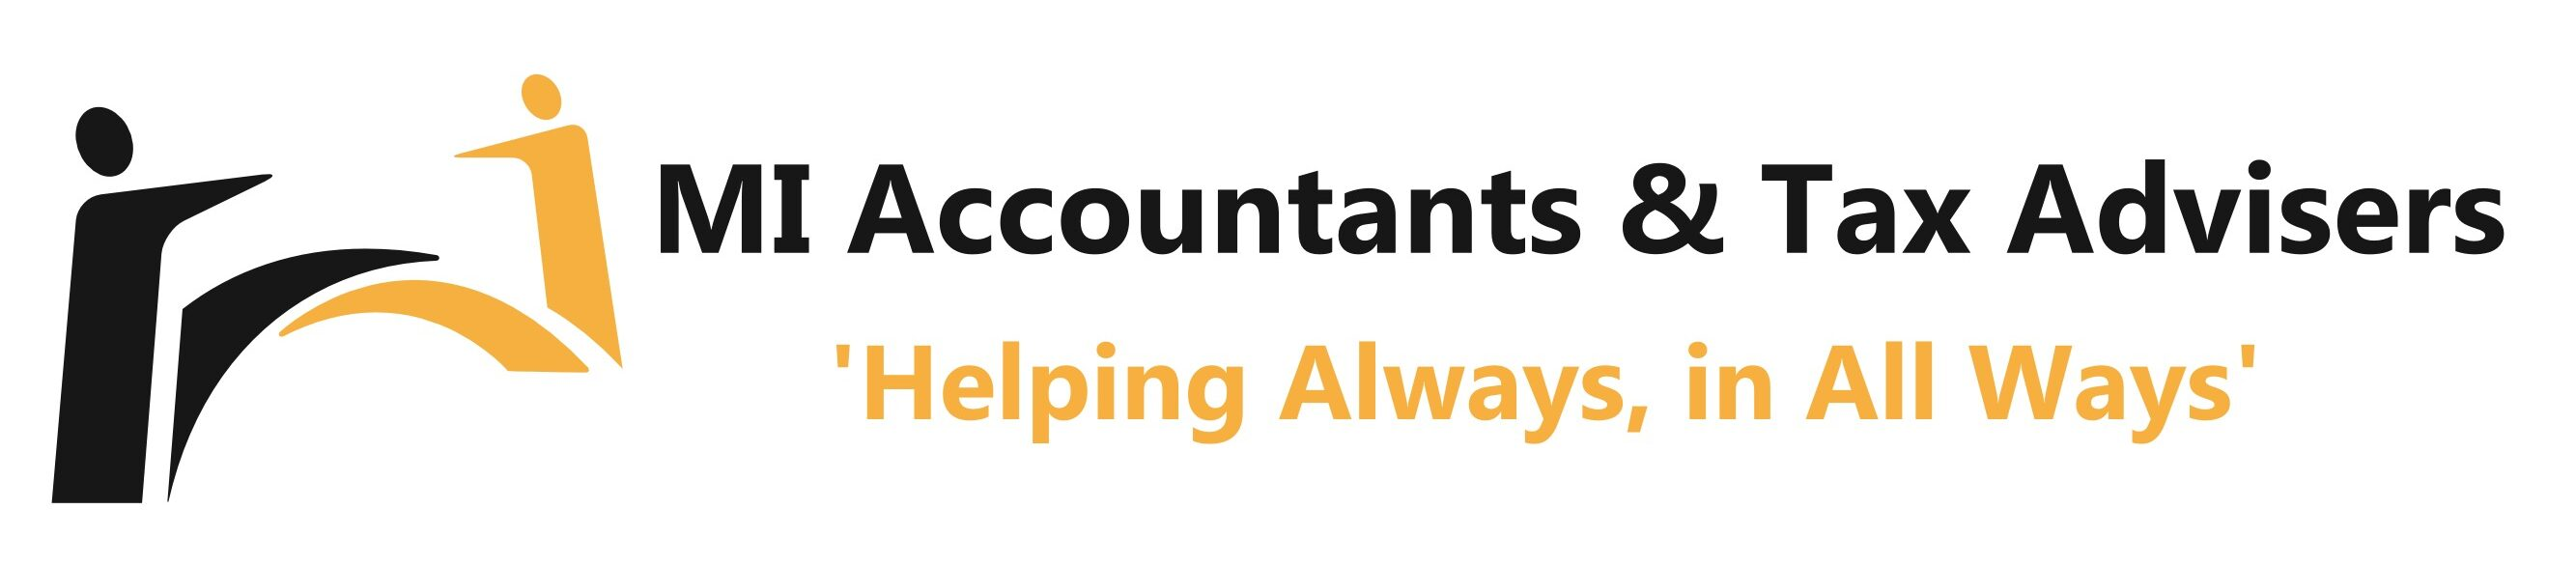 MI Accountants and Tax Advisers